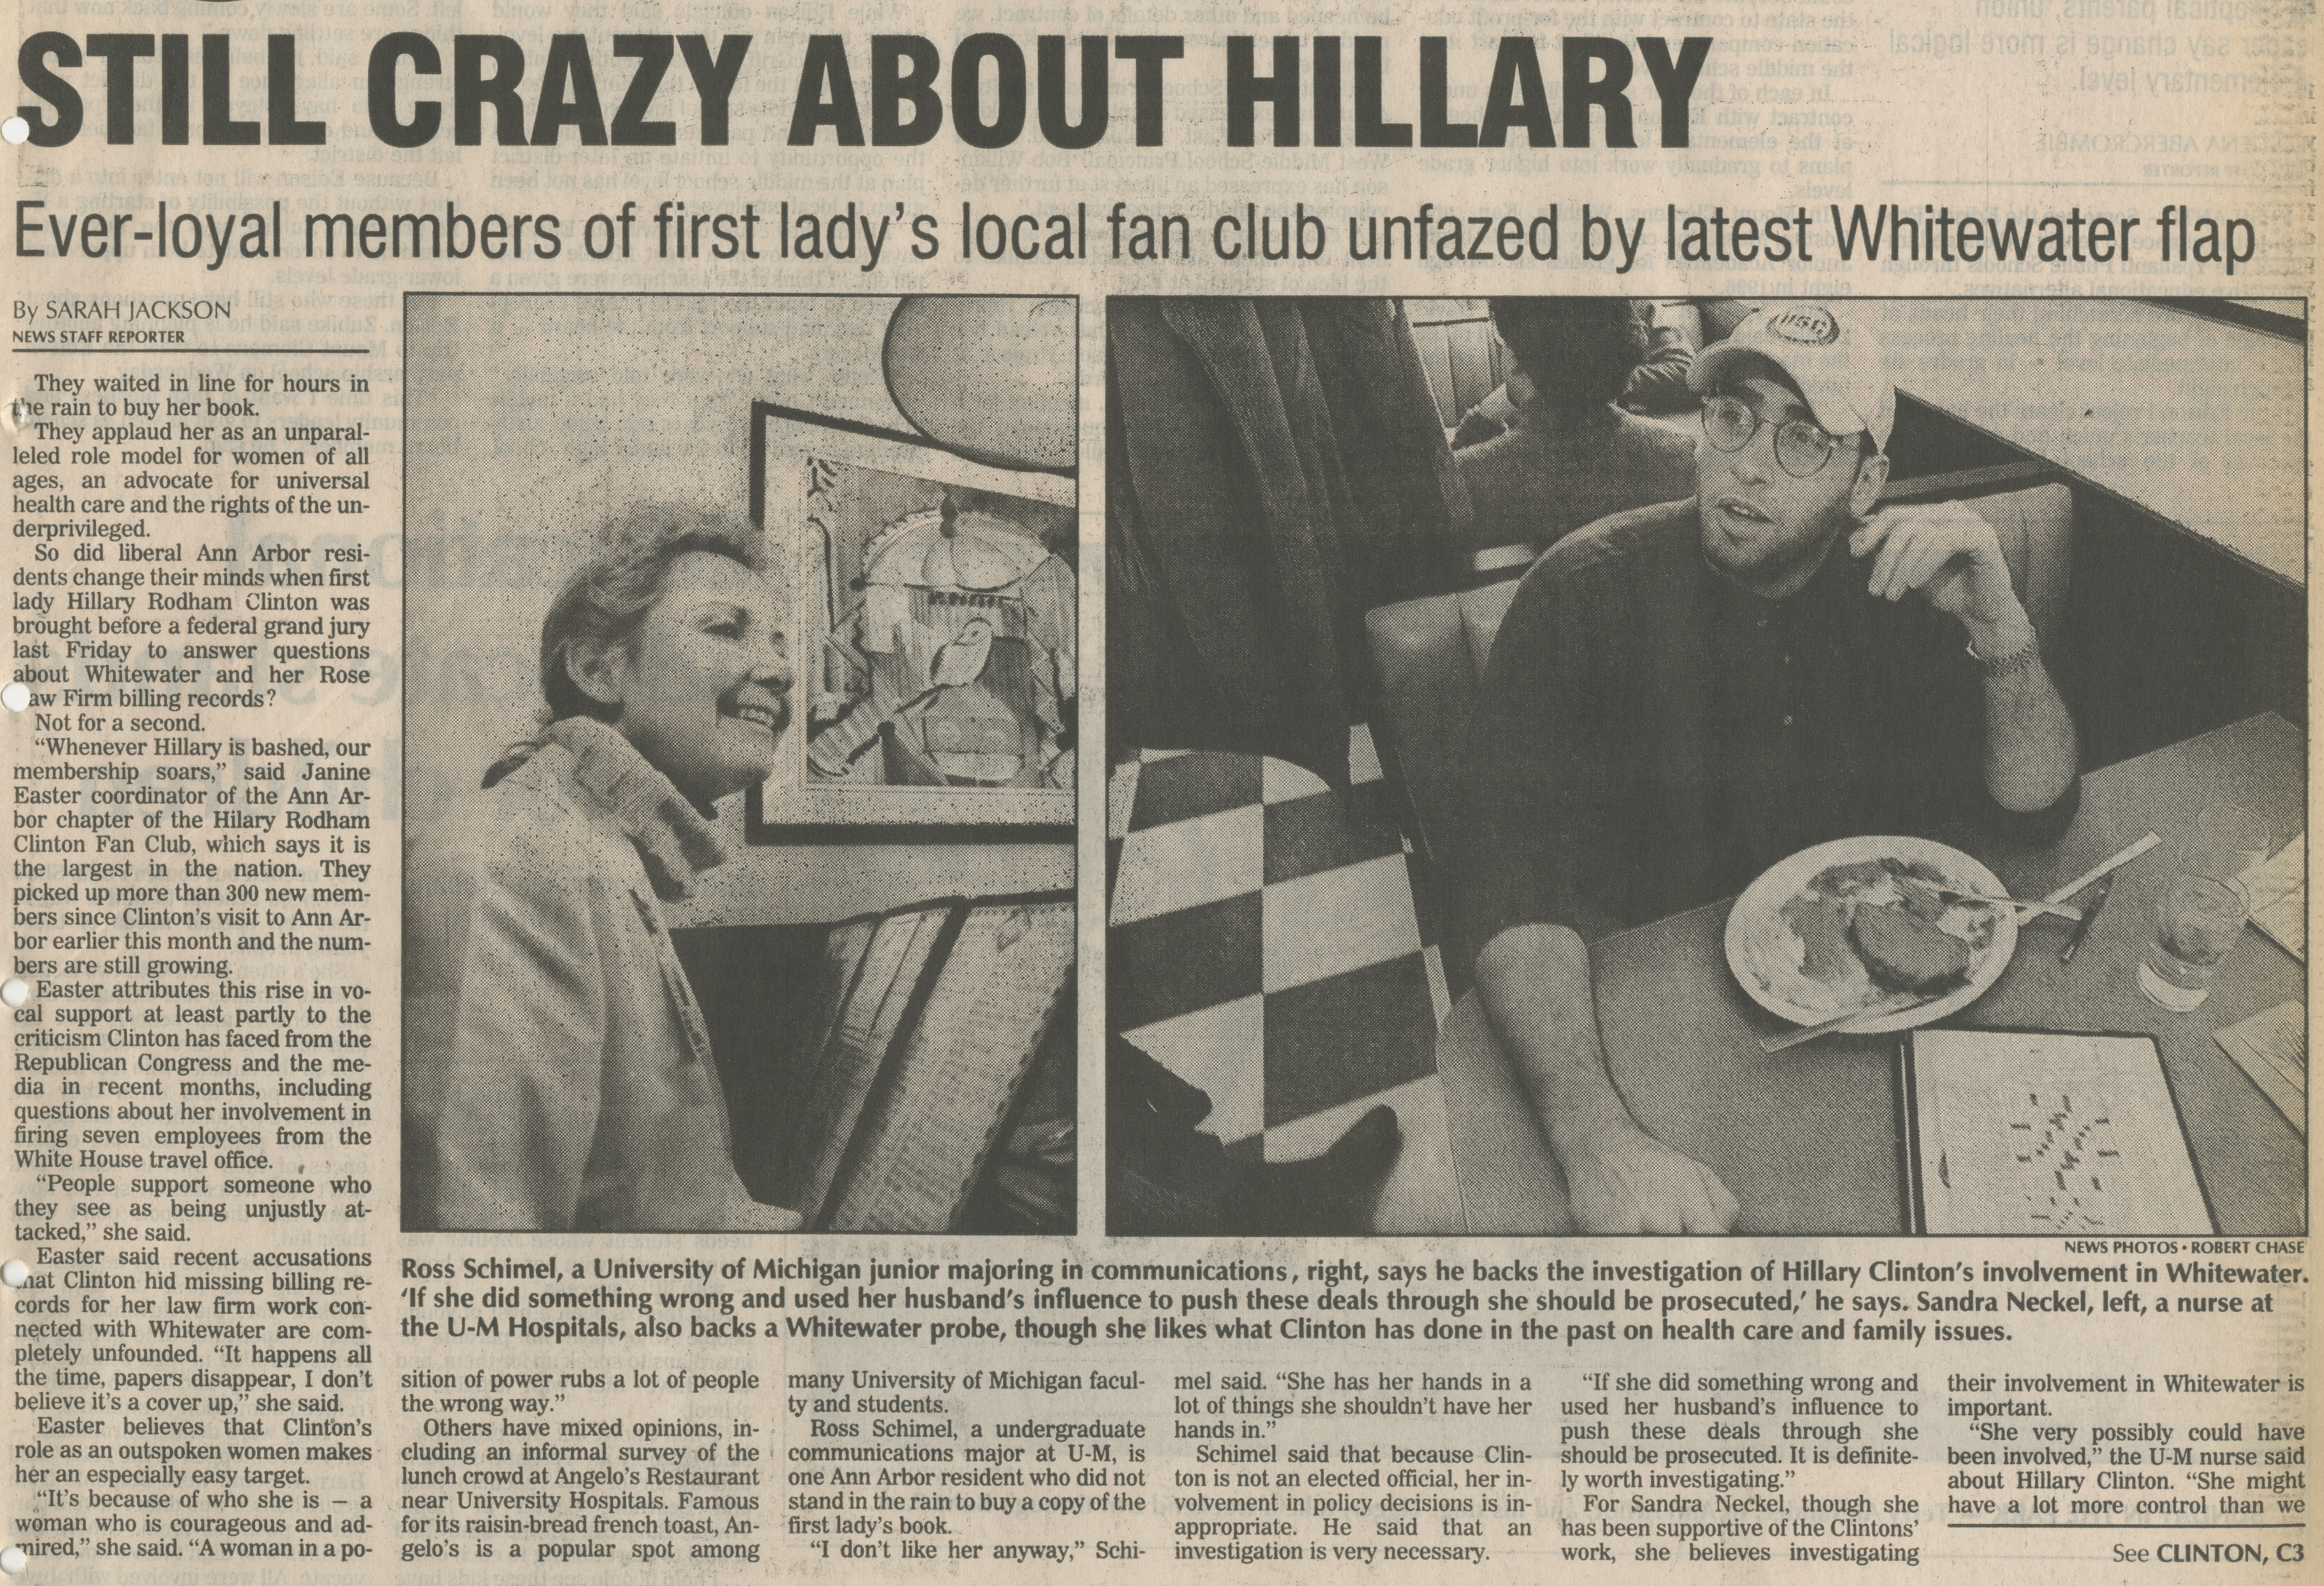 Still Crazy About Hillary image